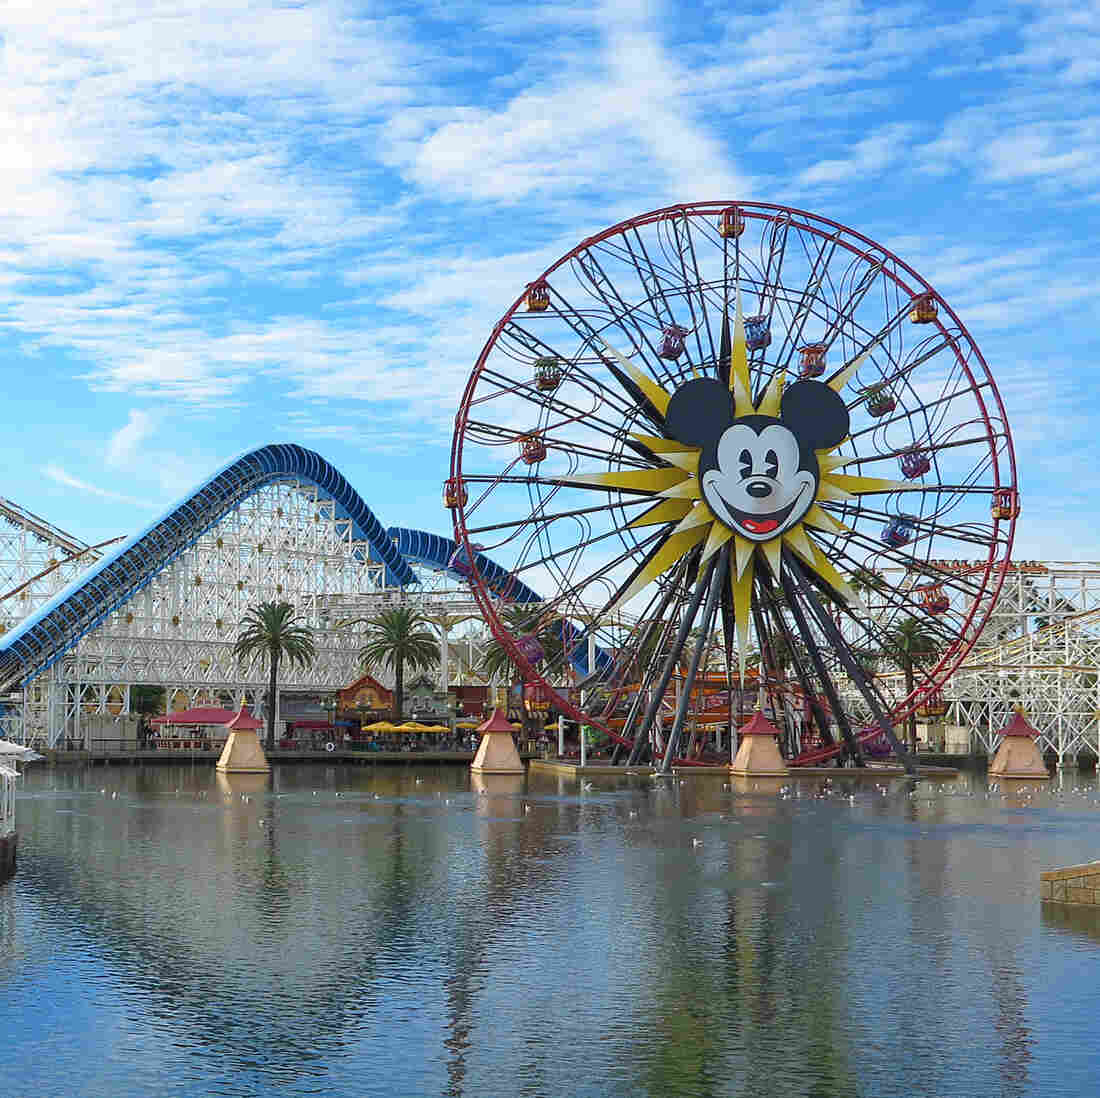 Measles Makes An Unwelcome Visit To Disneyland